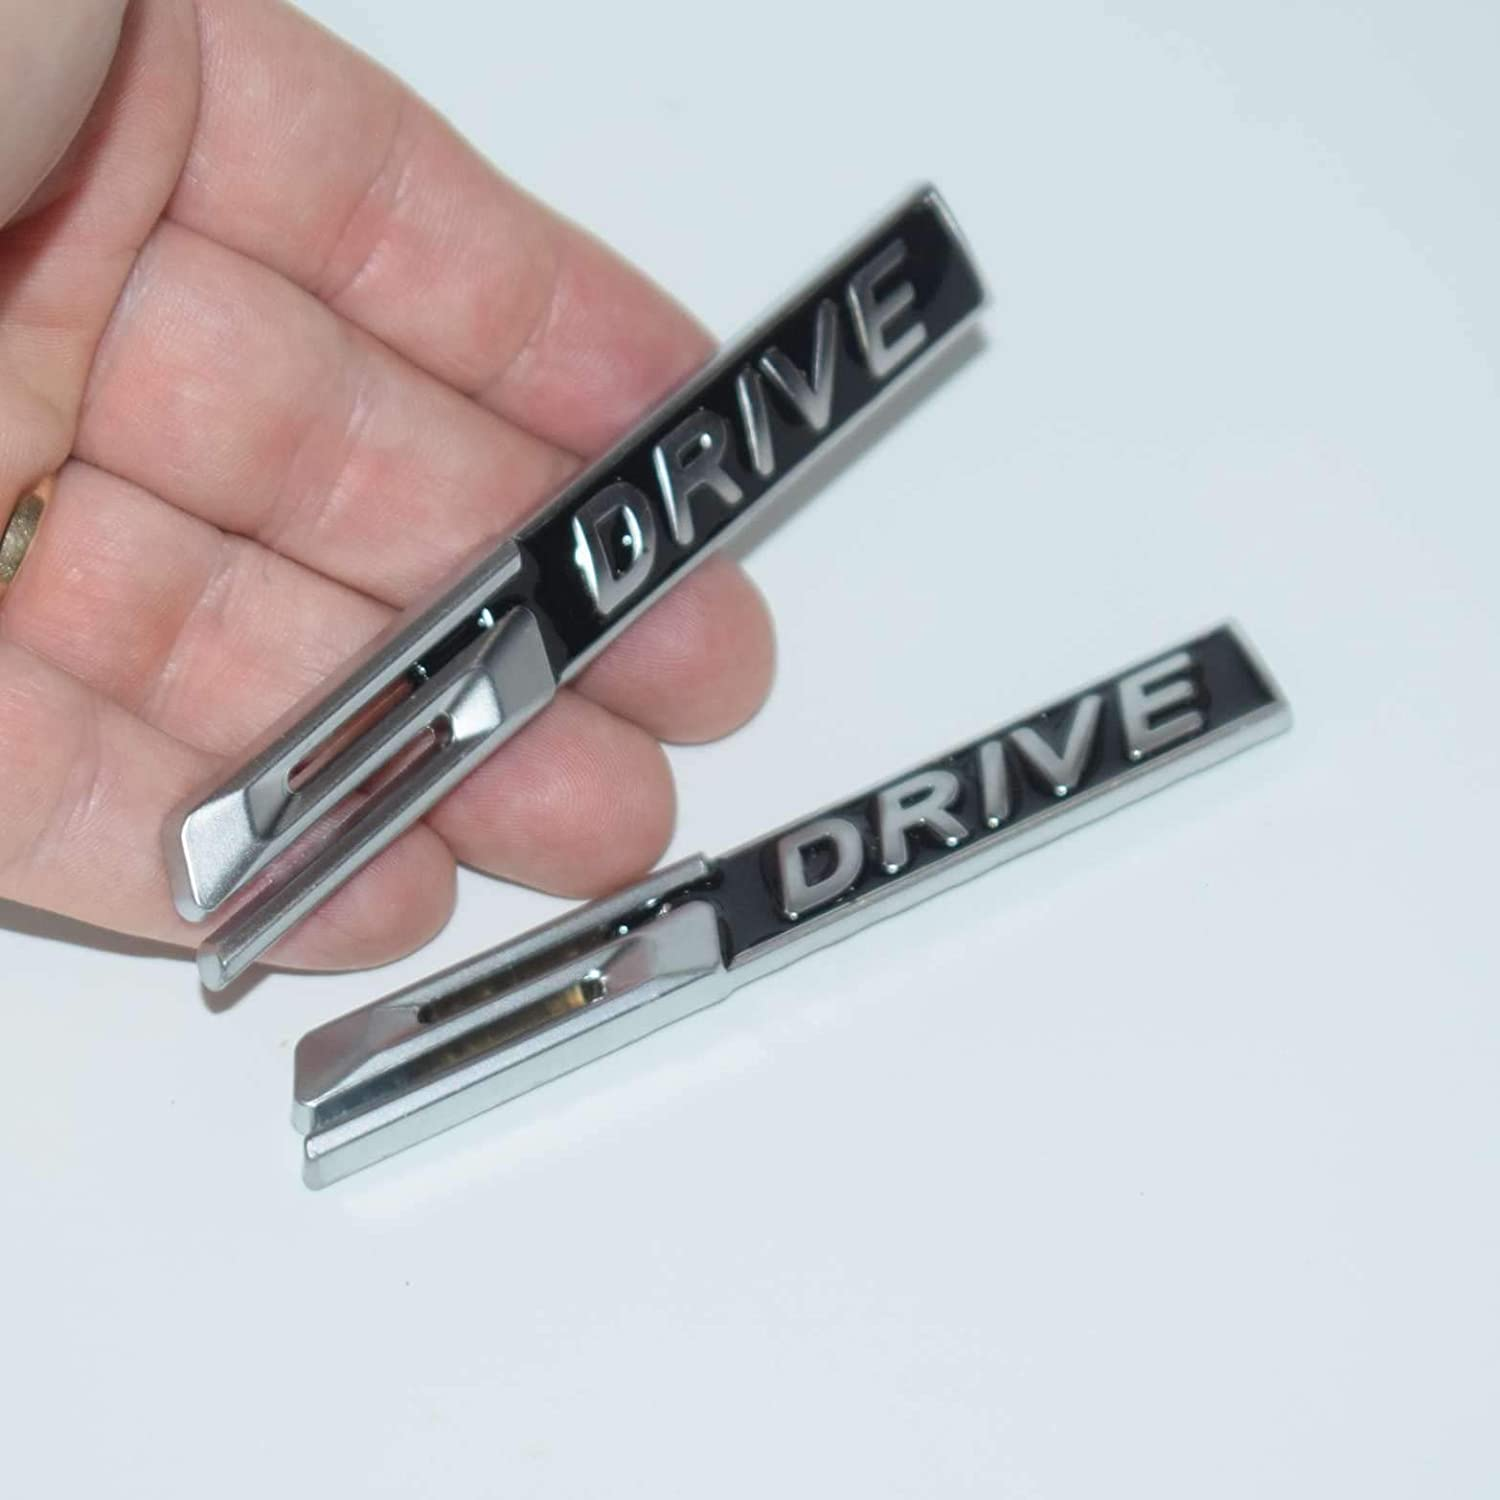 TOTUMY 2 Pieces S Drive Sdrive Chrome For X6 V8 E92 E93 X5 X3 E63 Fender Badge Metal Car Trunk Side Auto Emblem Logo 3D Adhesive Hq Chrome